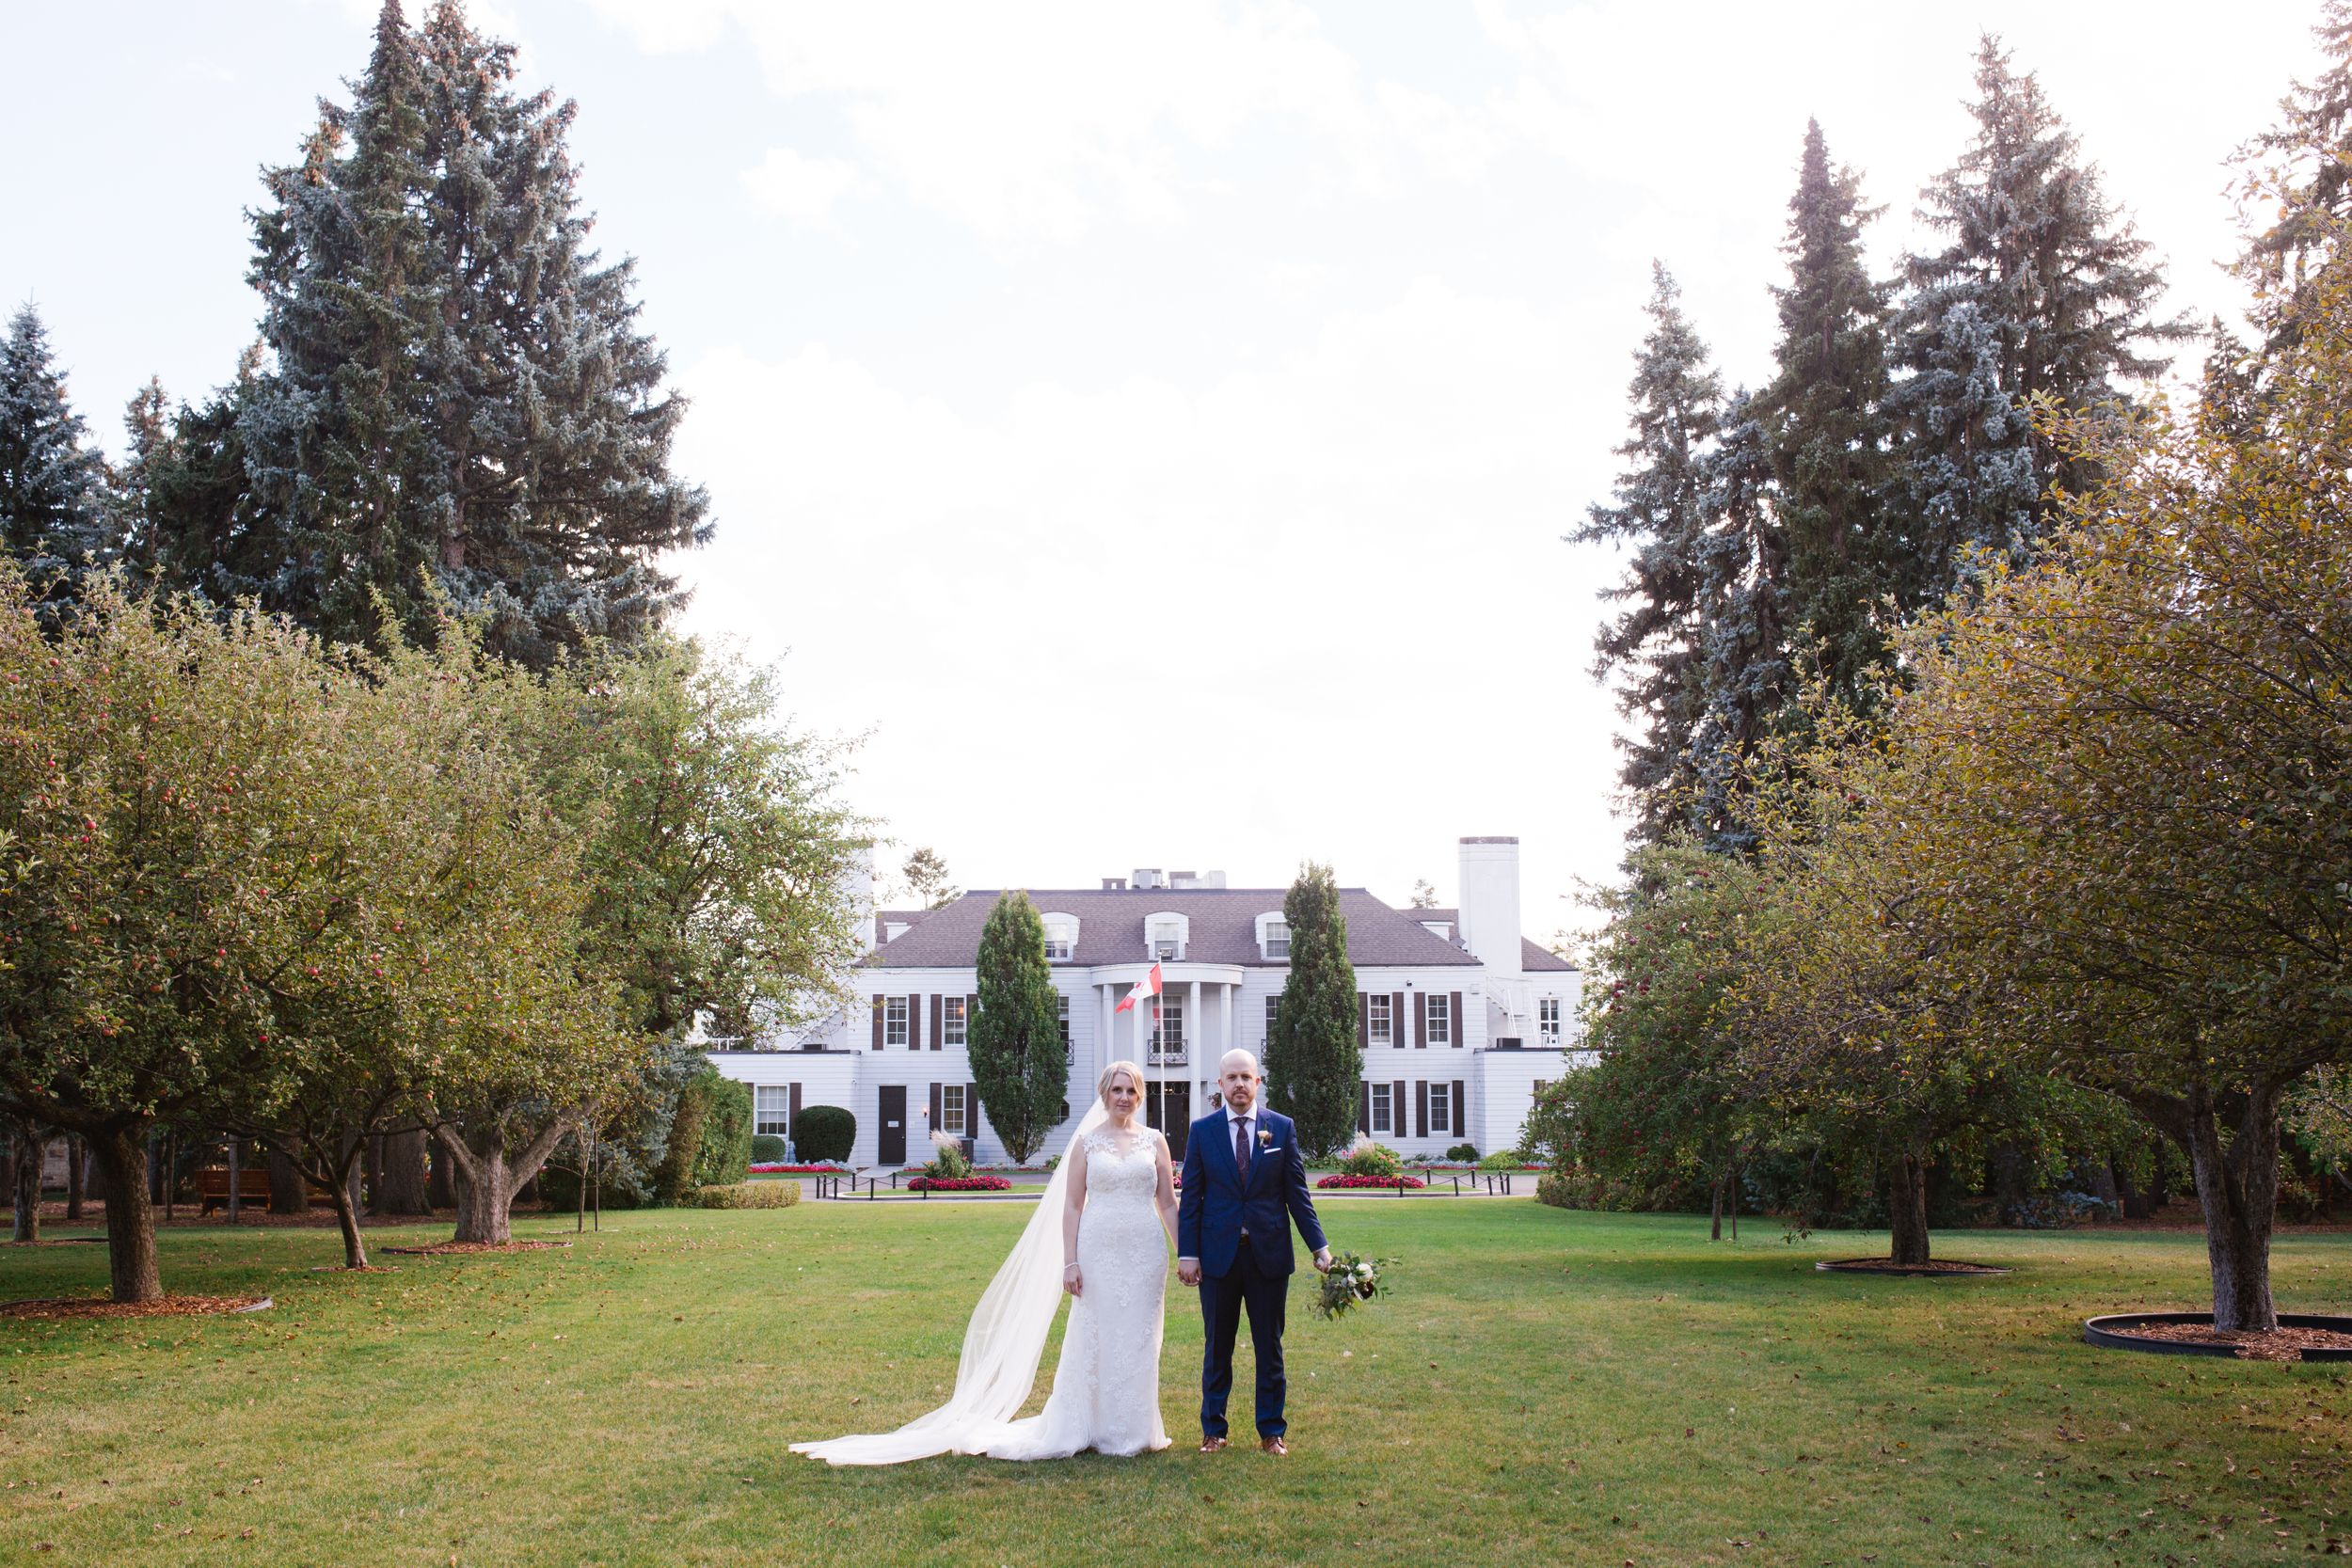 bride and groom in front of white building with columns and trees on either side shouldice hospital thornhill